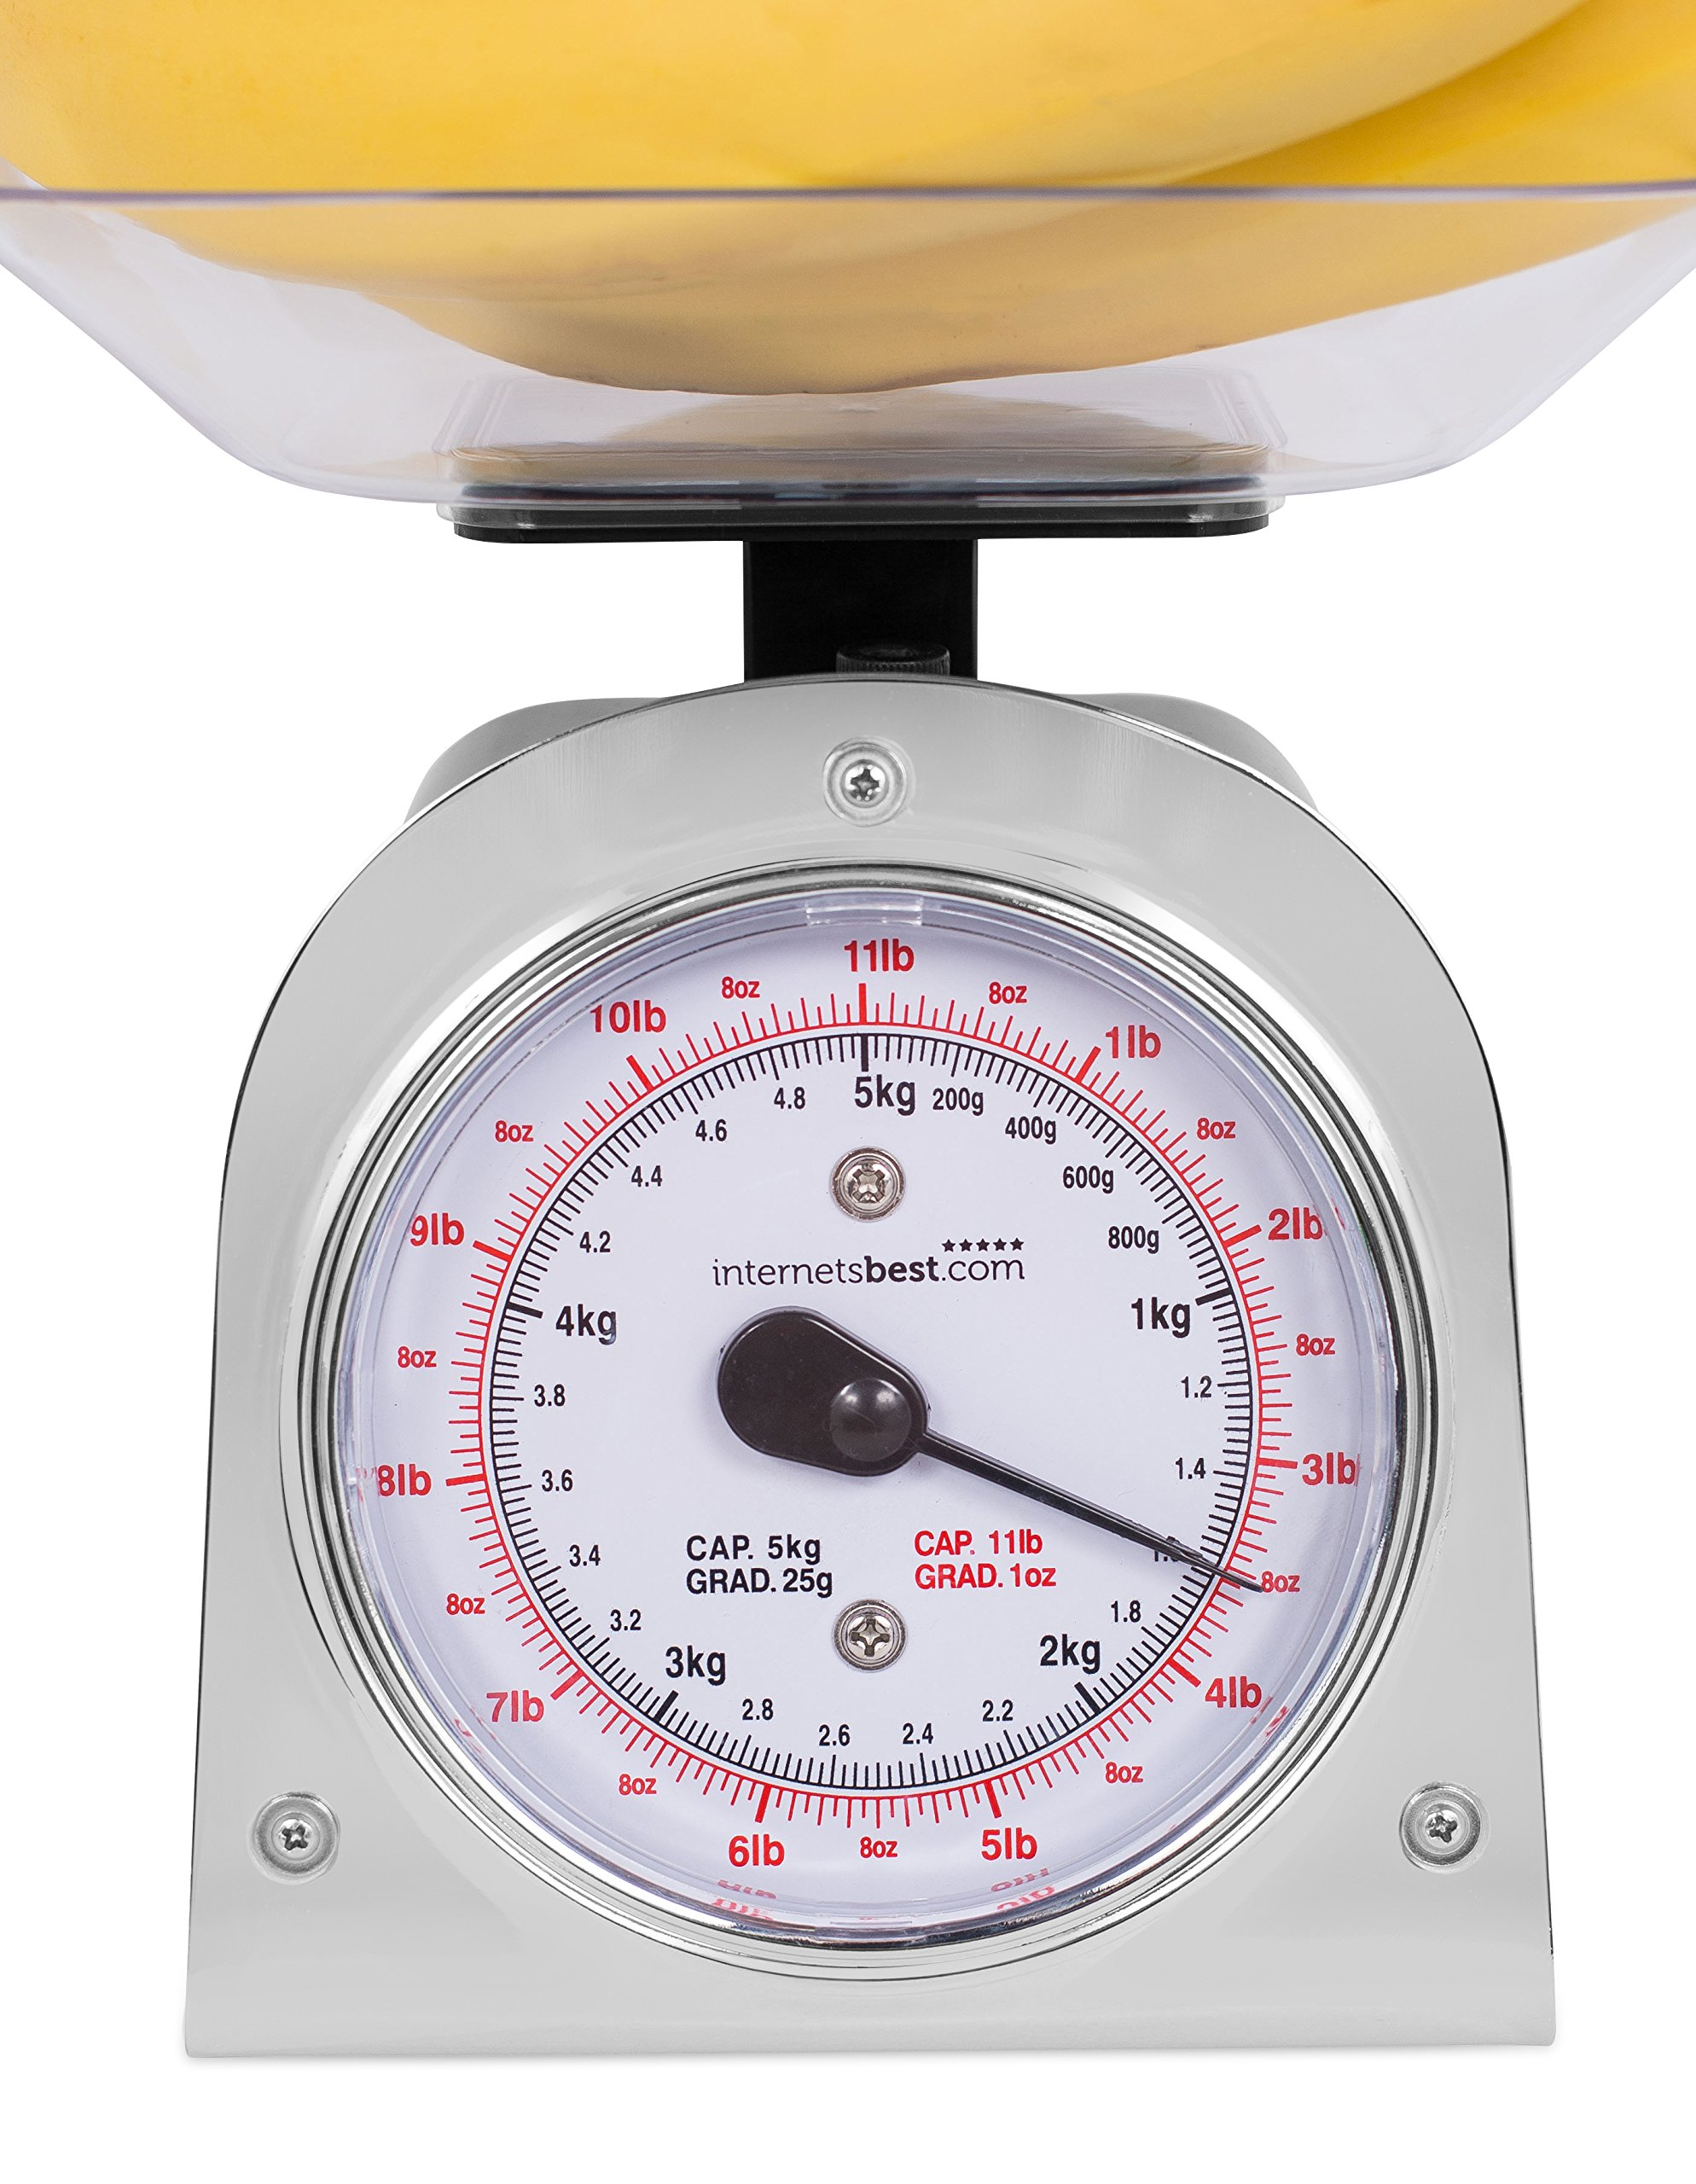 Internet's Best Mechanical Kitchen Food Weight Scale with Bowl | Accurate Measurements | Weighs Up 11 Lbs | 1KG - 5KG by Internet's Best (Image #5)